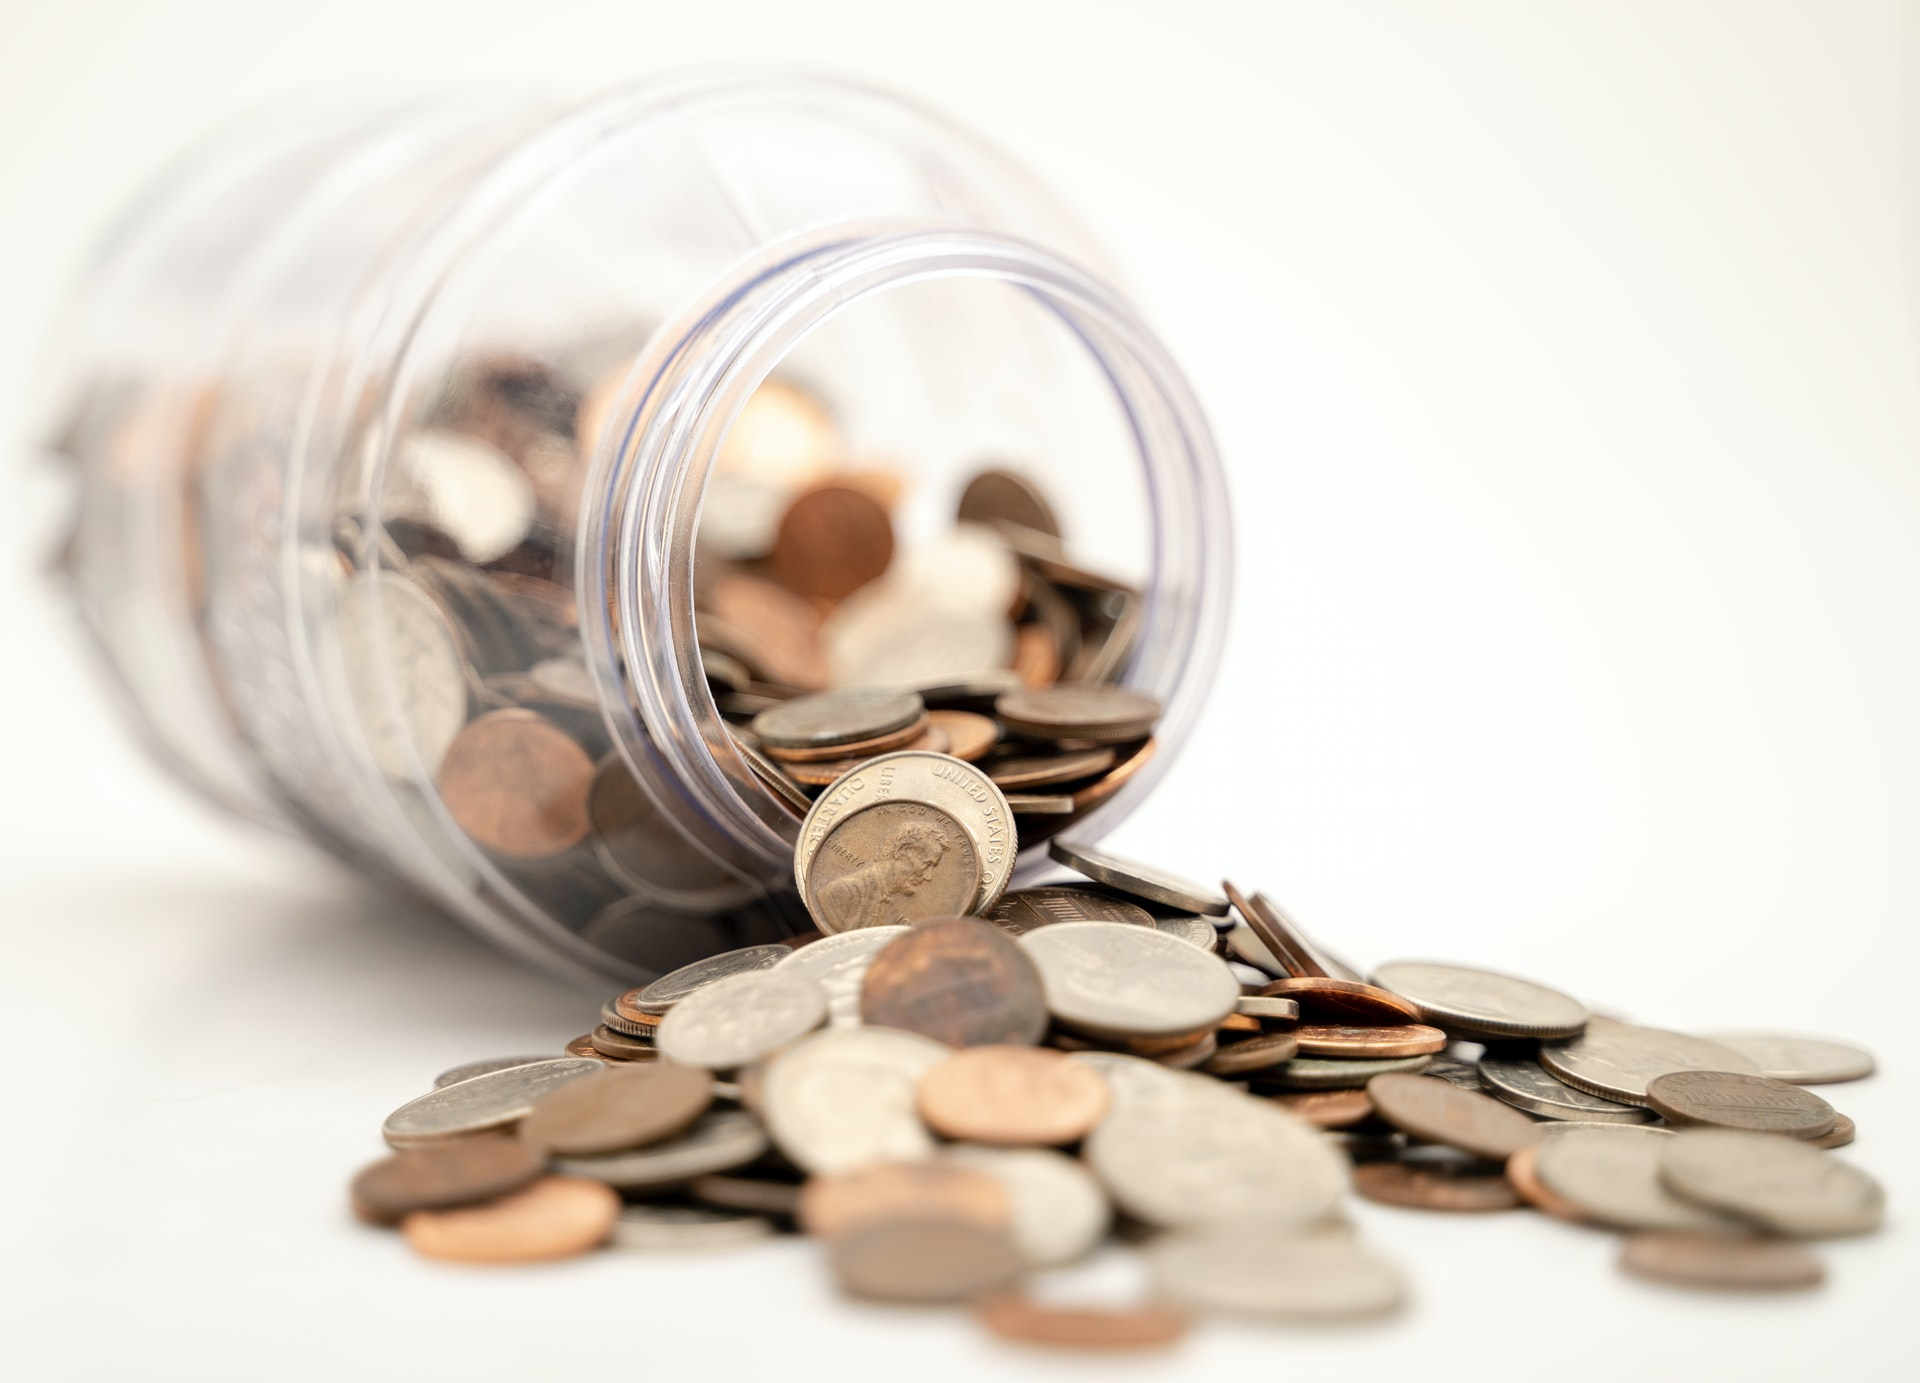 Coins spilling out of a glass jar